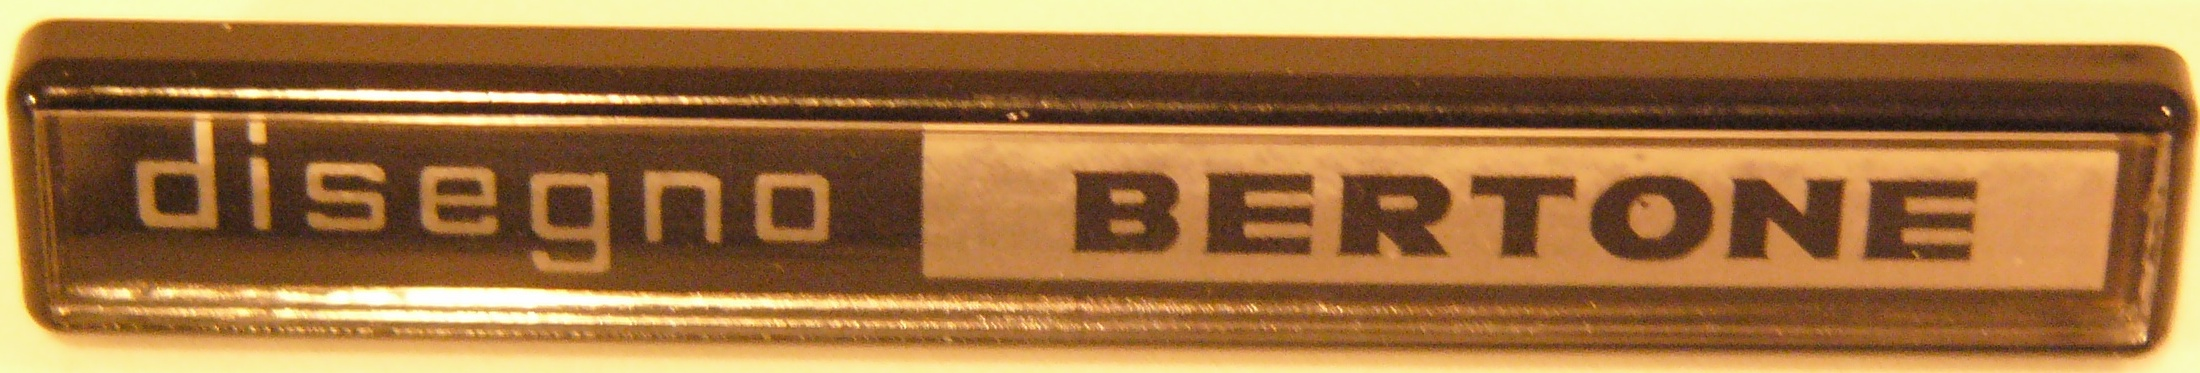 Bertone badge